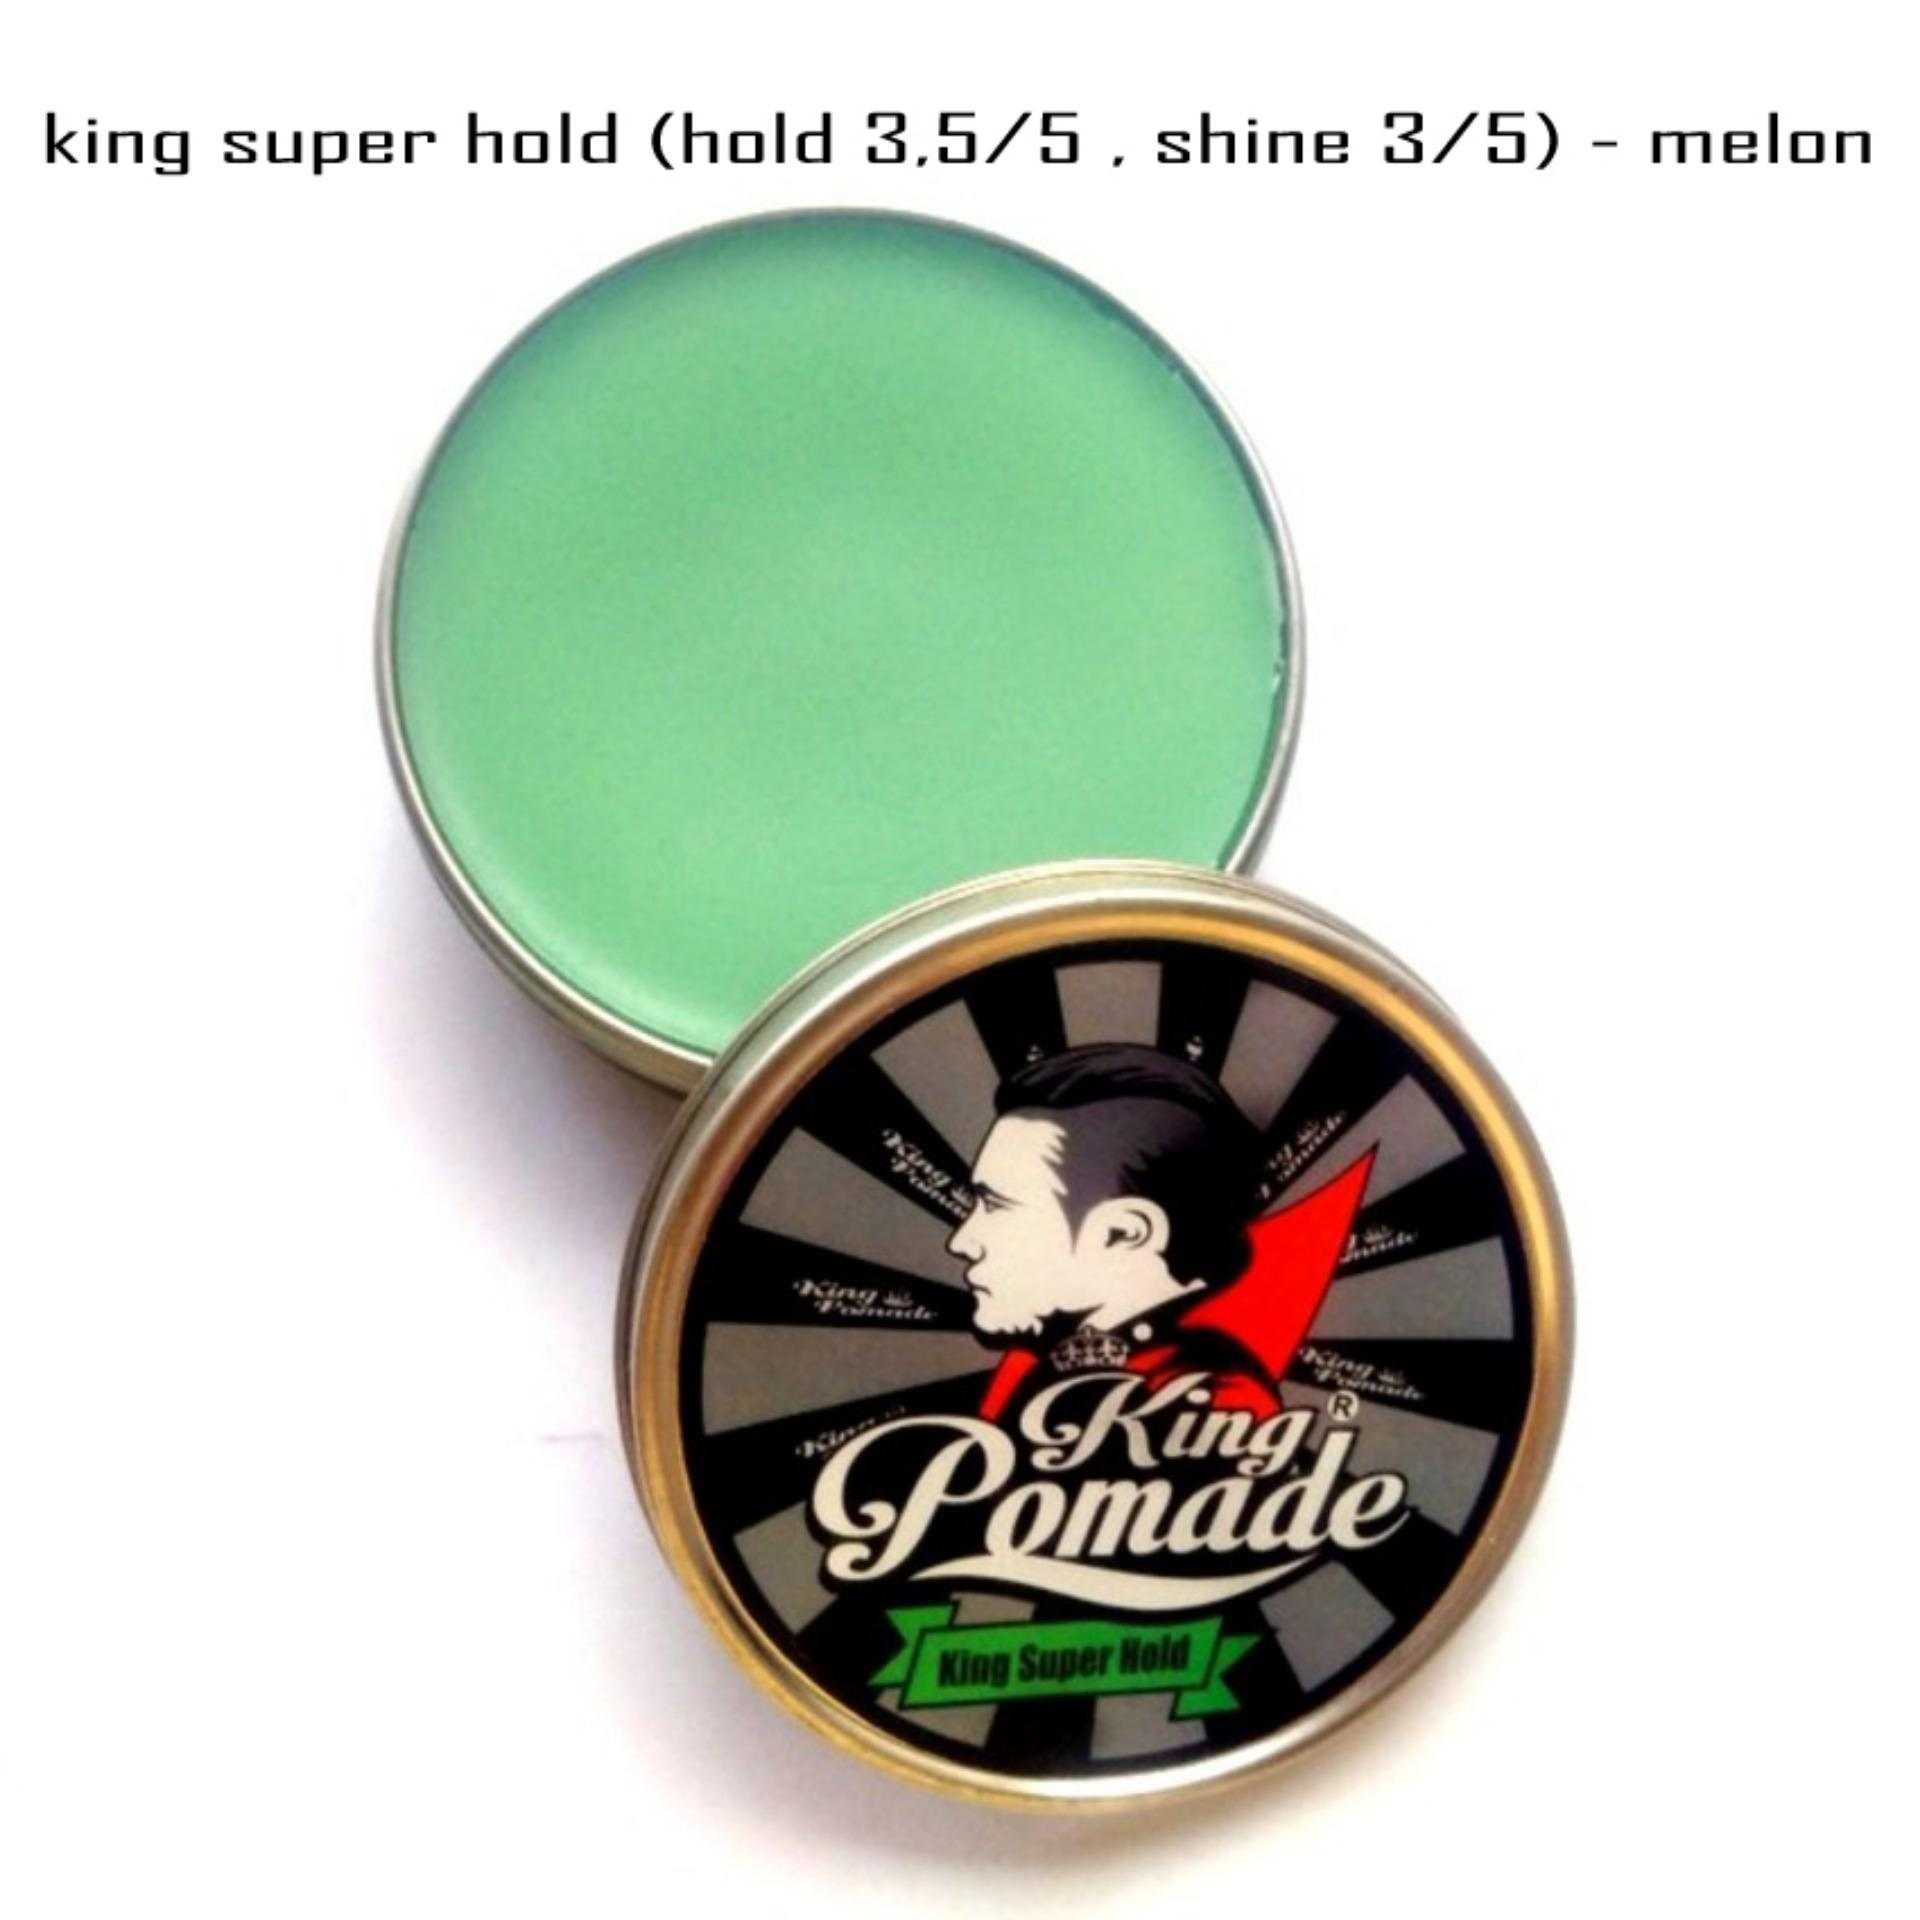 JUAL King Pomade 2.8oz 80gram Super Hold Oilbased Terlaris